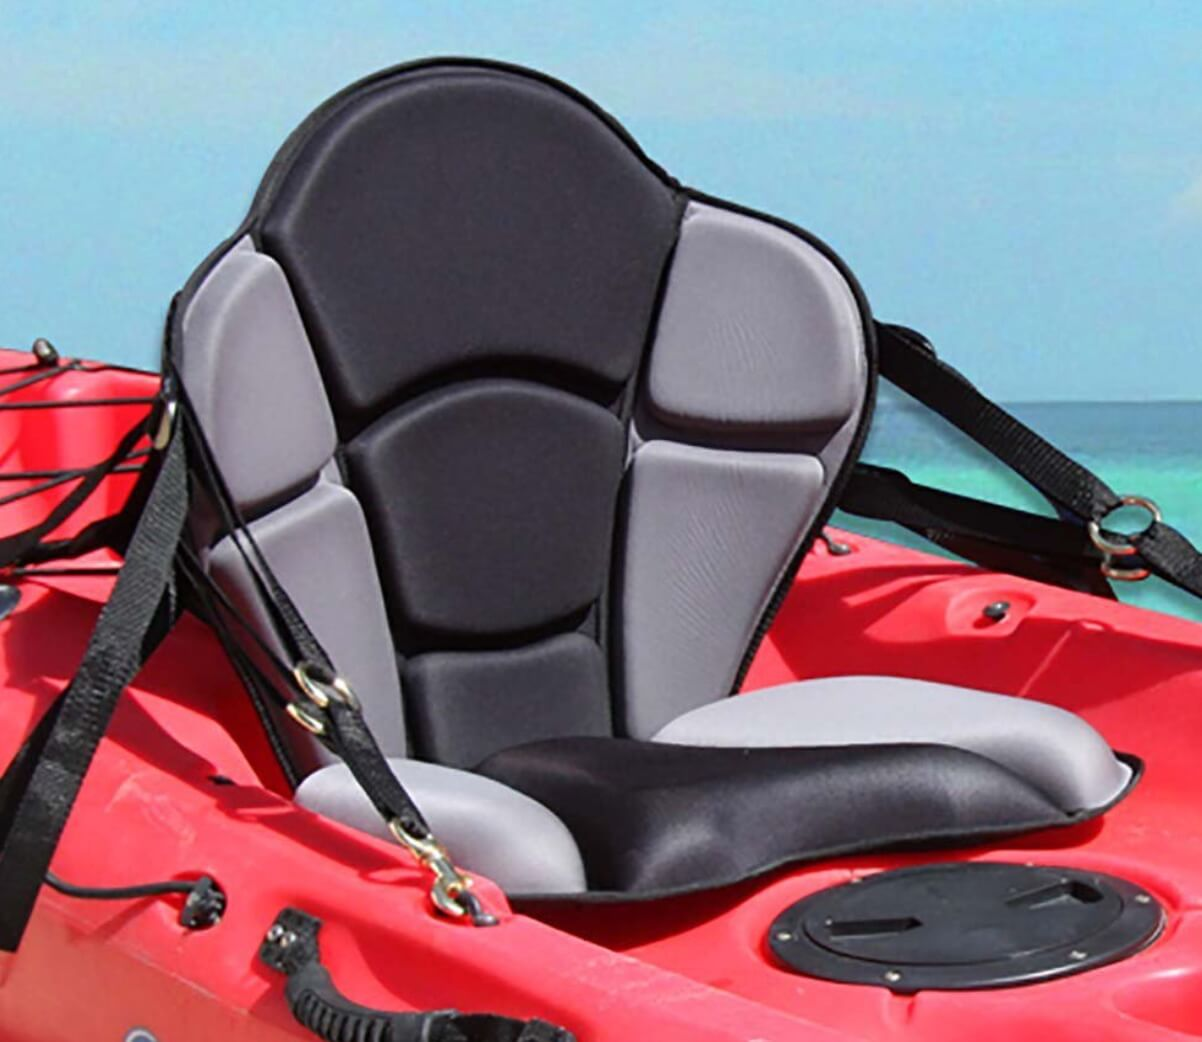 Best Kayak Seat with Back Support